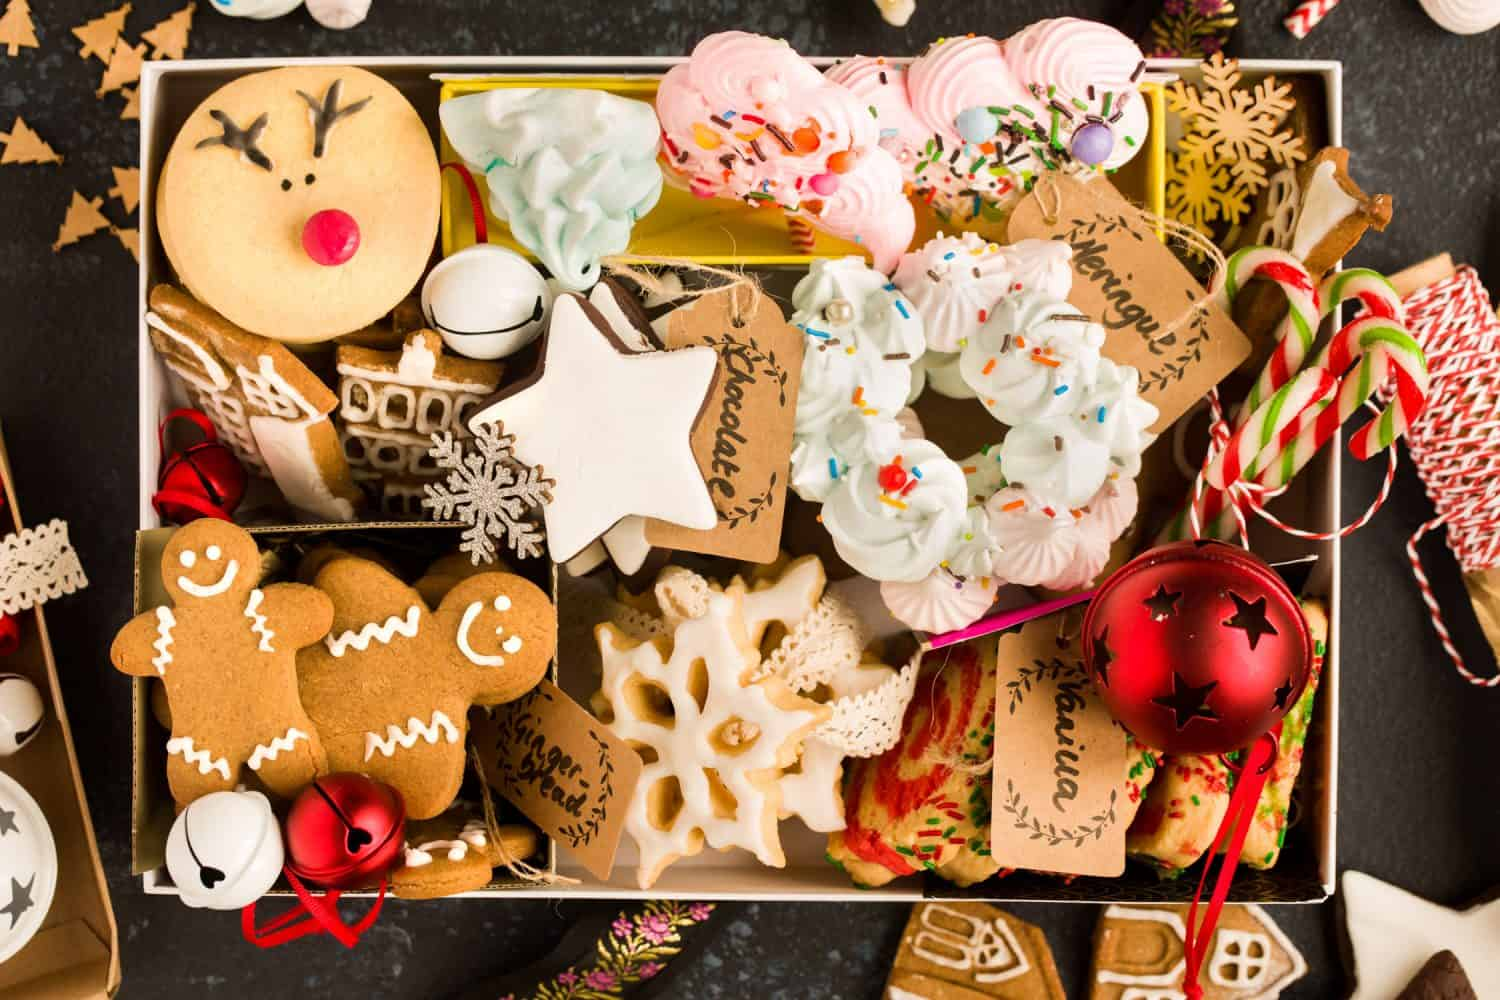 Close up of a gift box containing a selection of biscuits and cookies.